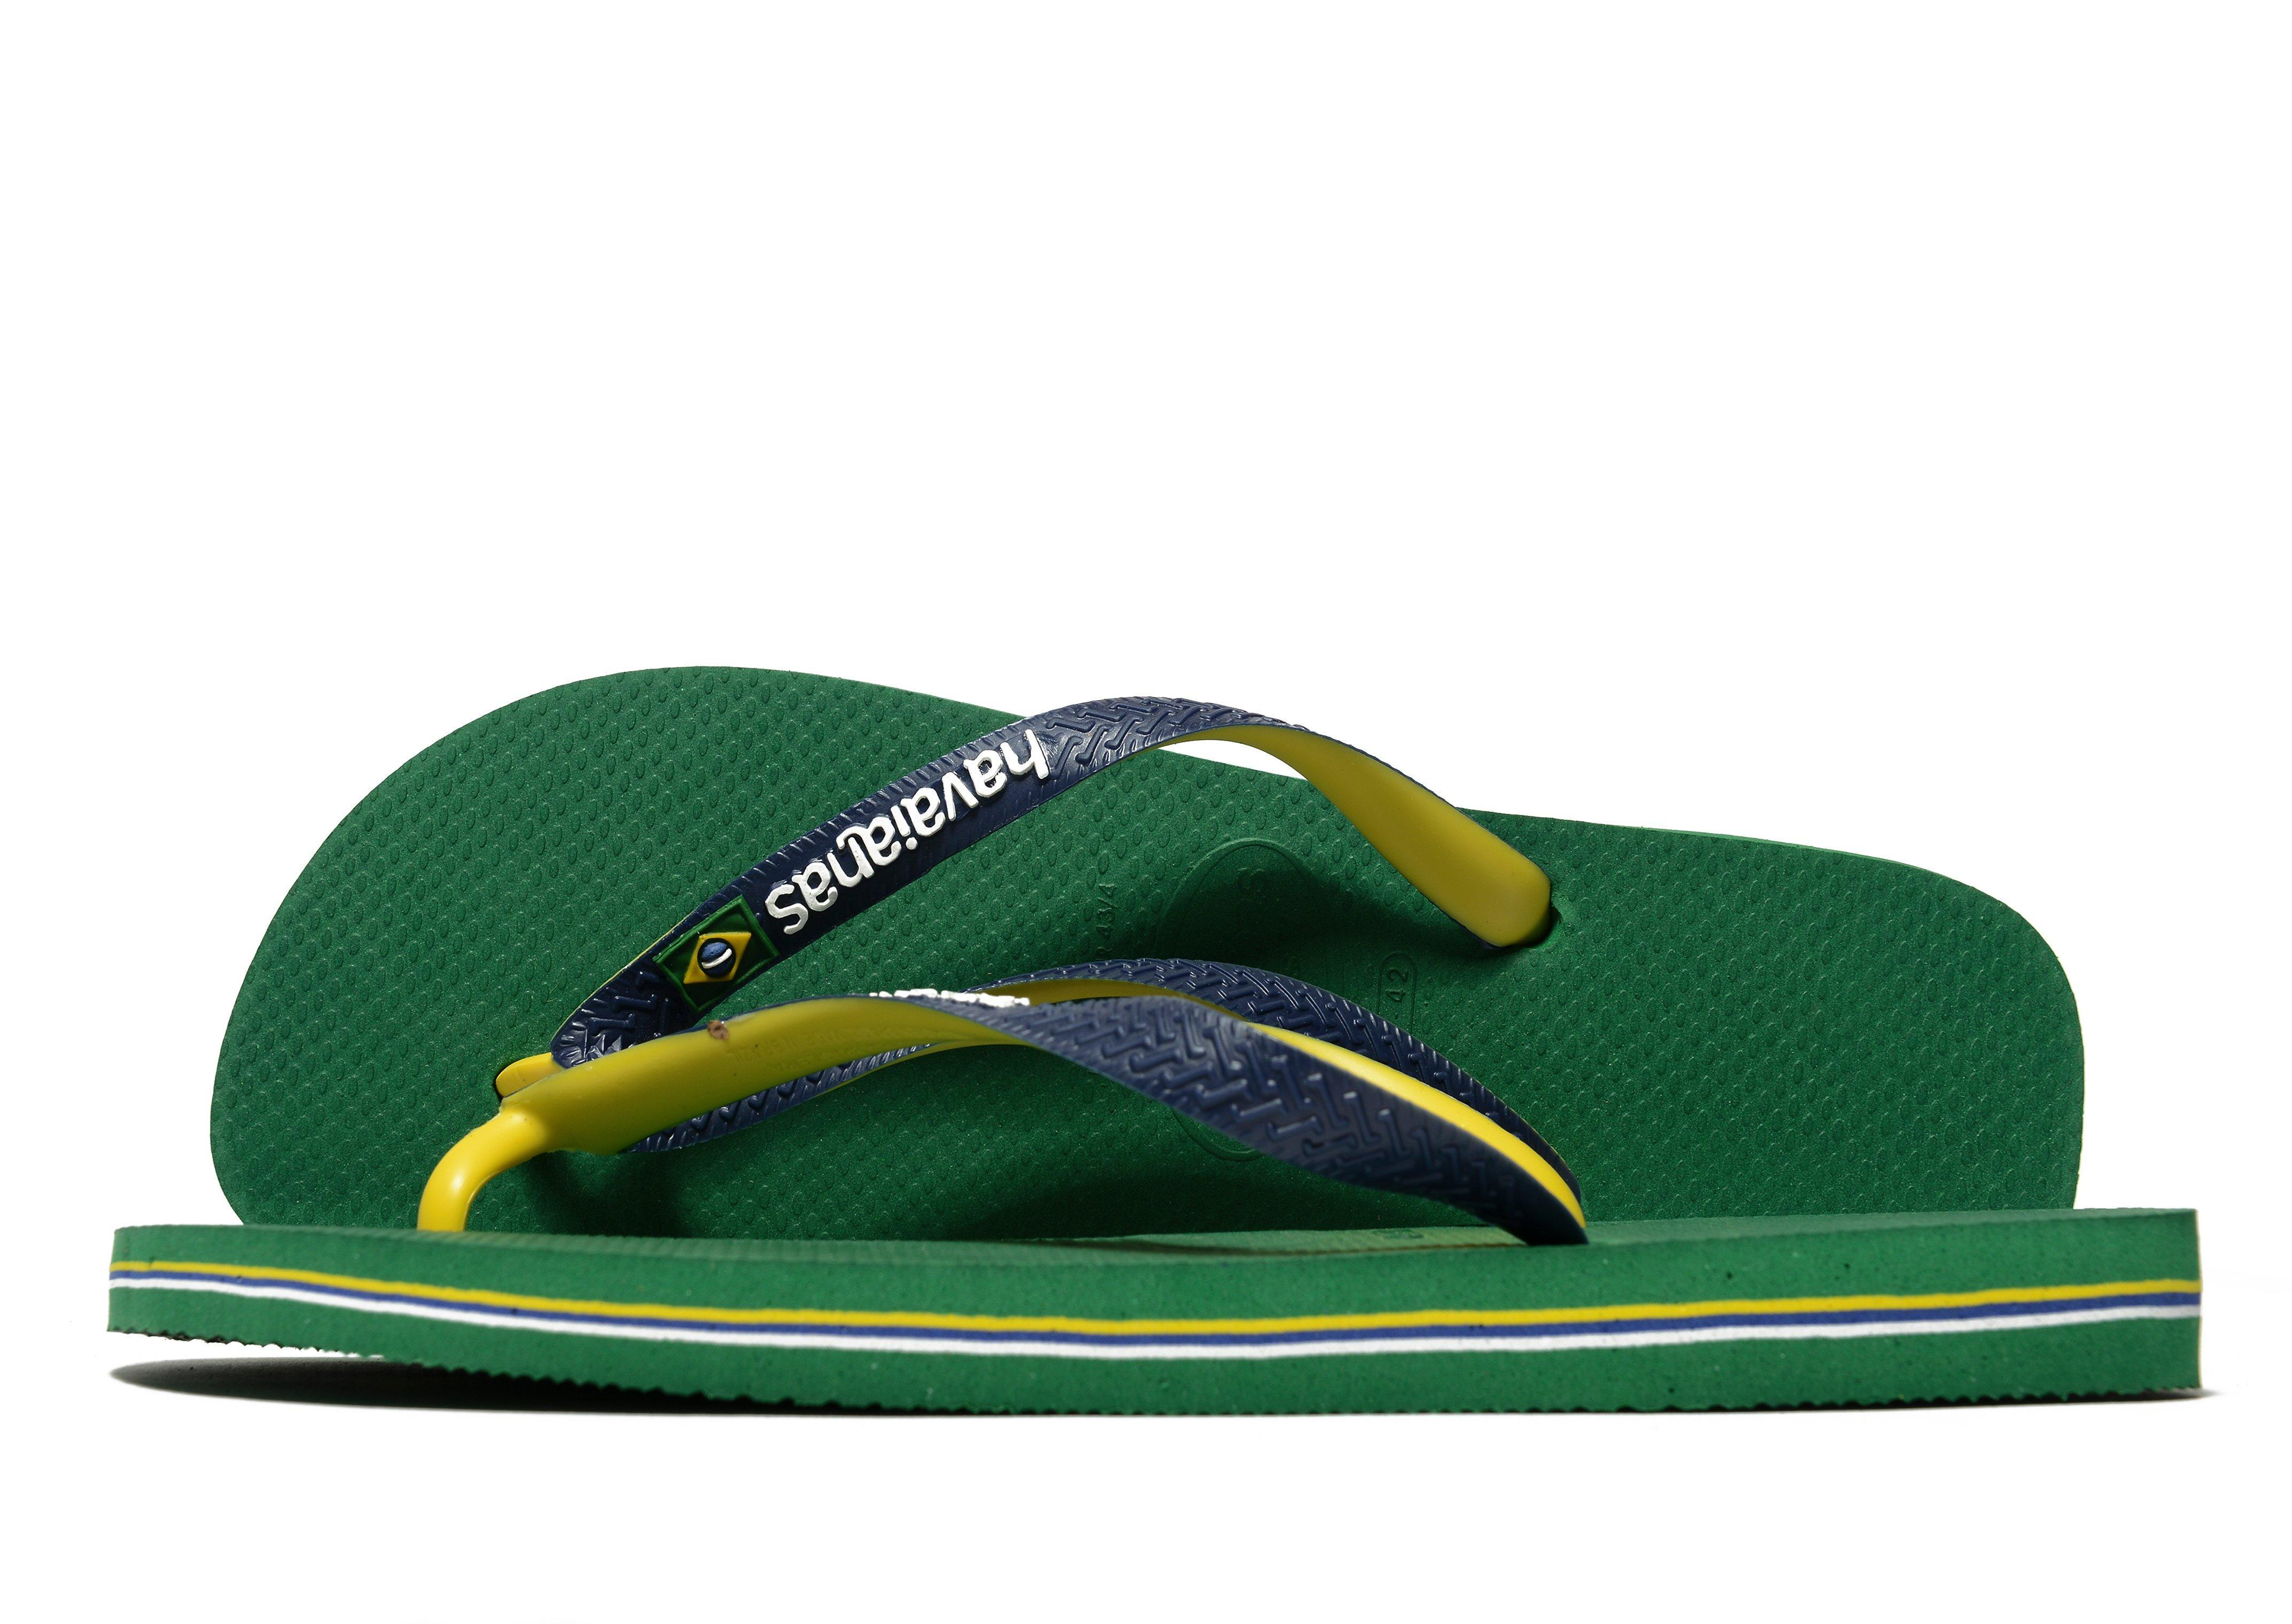 """havaianas a brazilian brand goes global """"the brazilian spirit is joyful, vibrant, free it's easy for brazilians to feel this way because it's basically summer all the time we want those emotions to be communicated everywhere."""